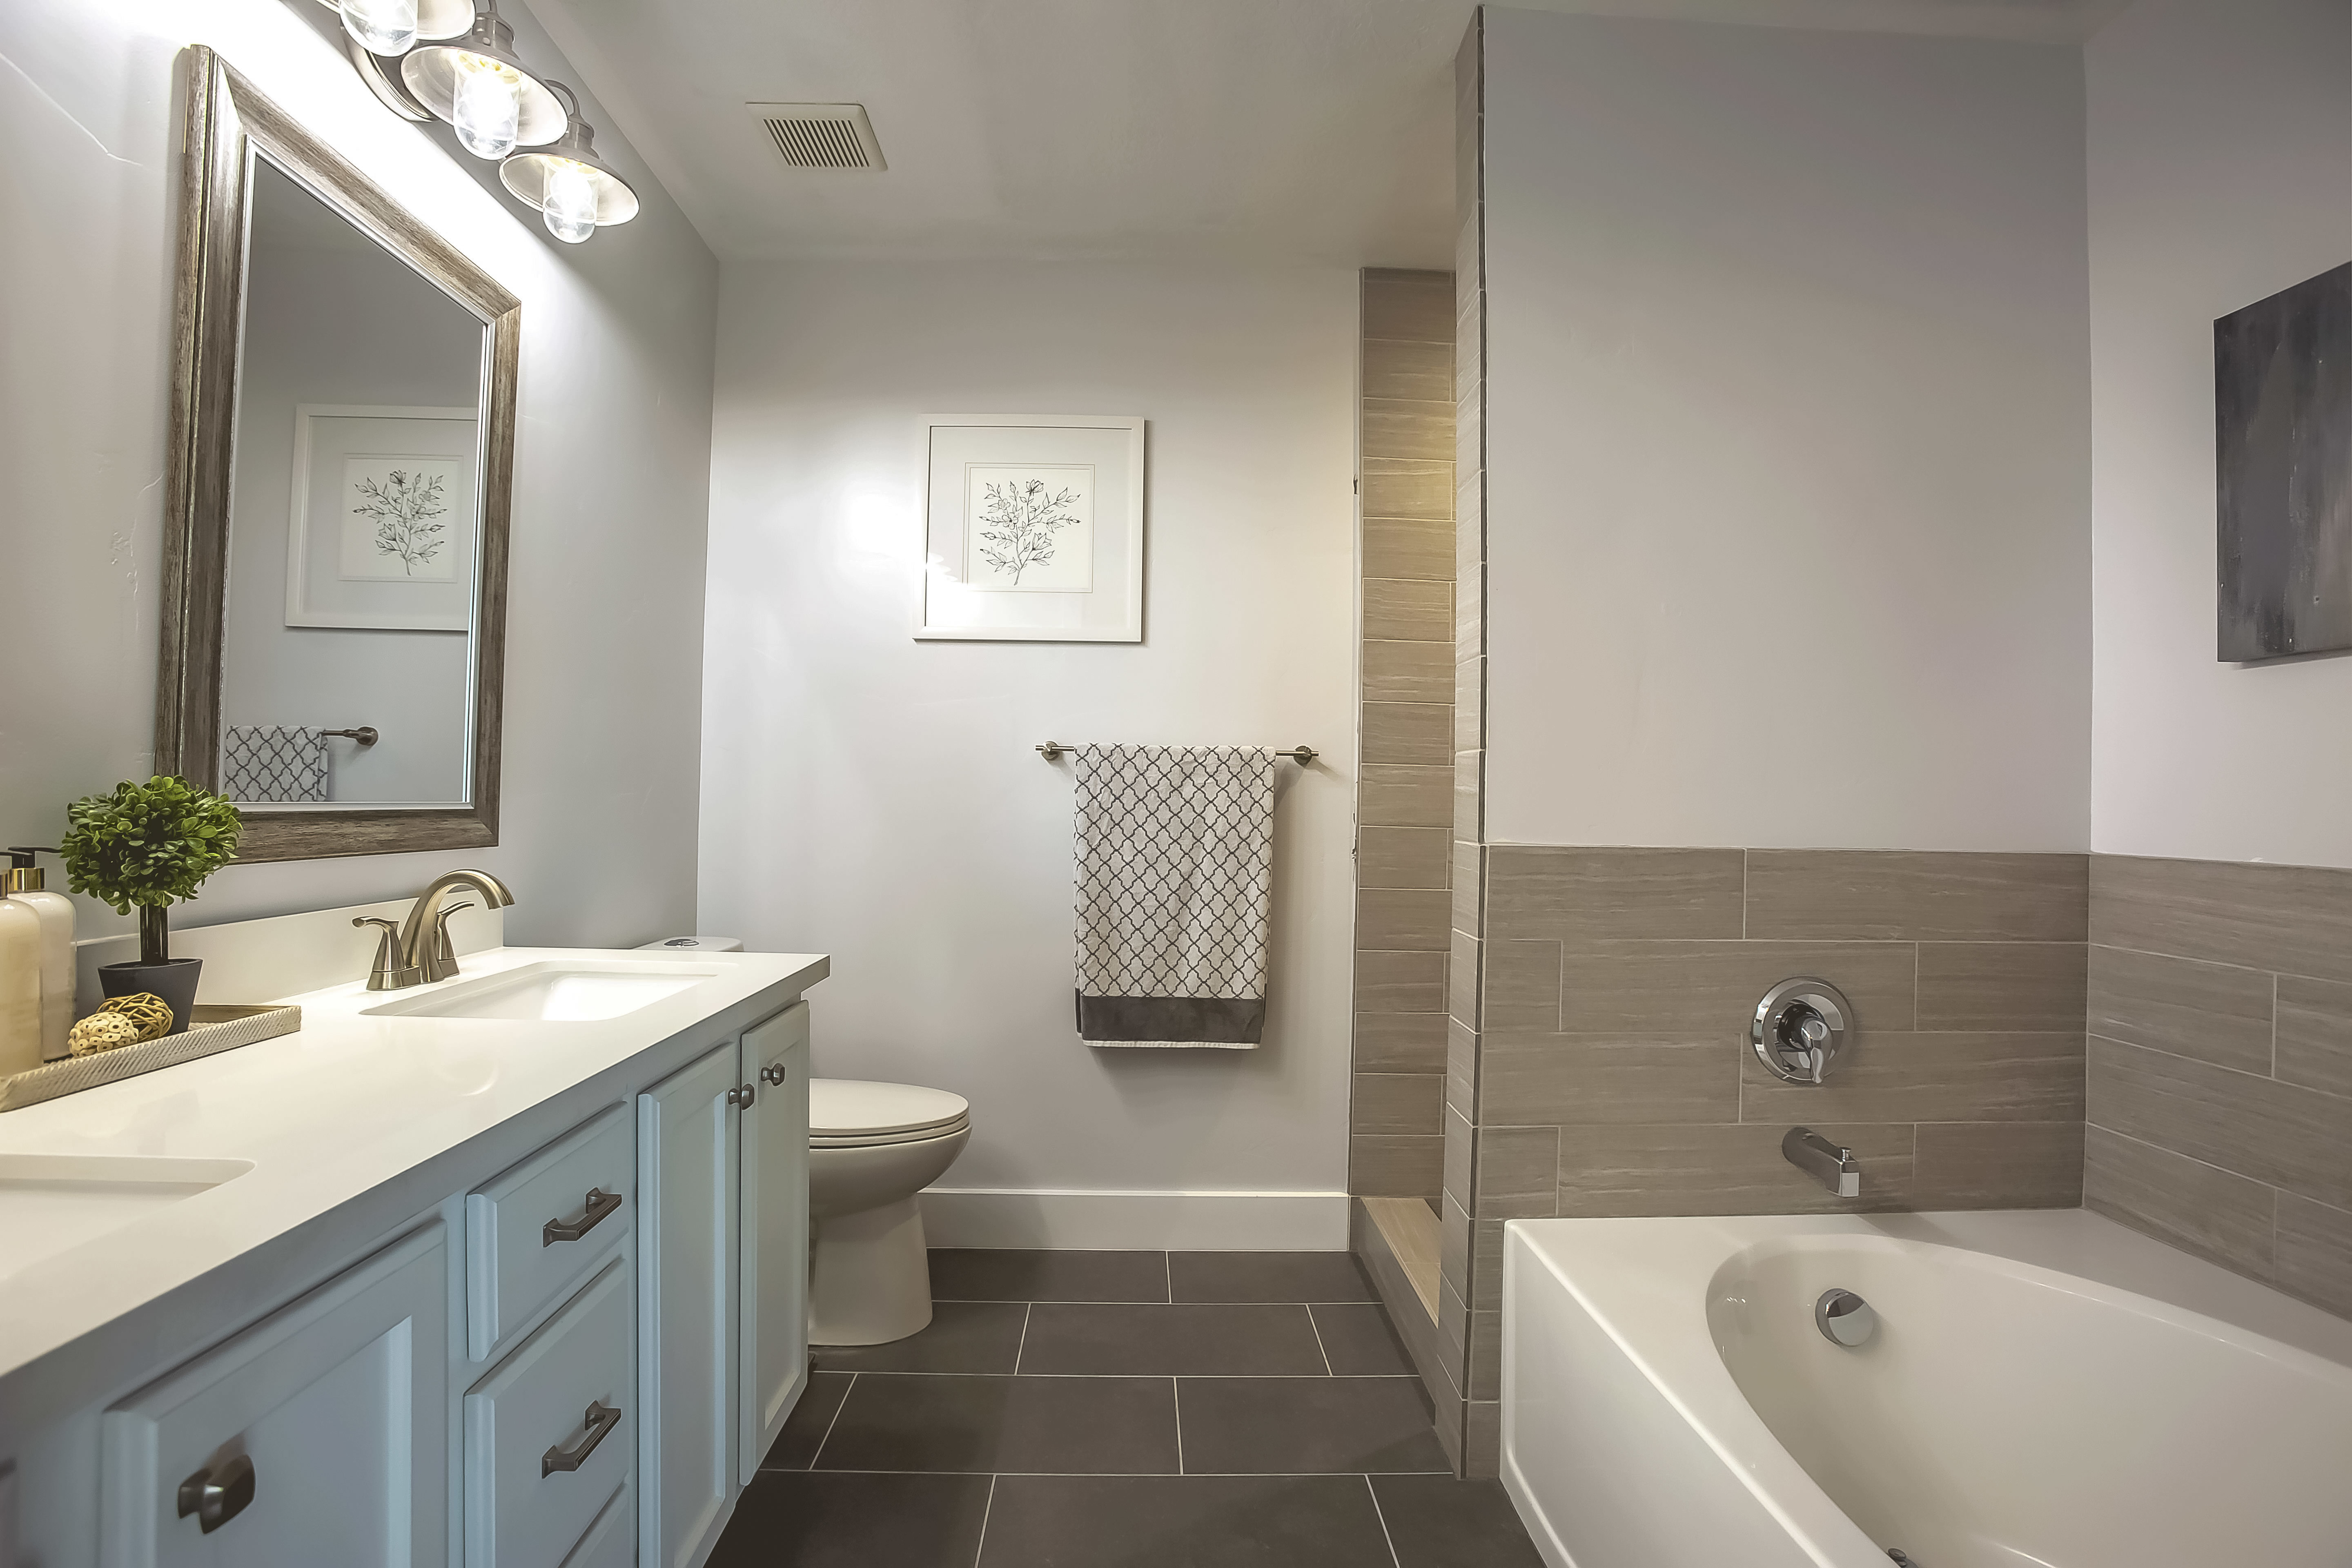 Medium size bathroom remodel with vintage/industrial vanity sconces .  Double vanity with white quartz countertop and drop mount sink with brushed nickel hardware.  Slate like tile job  for both tub and shower.